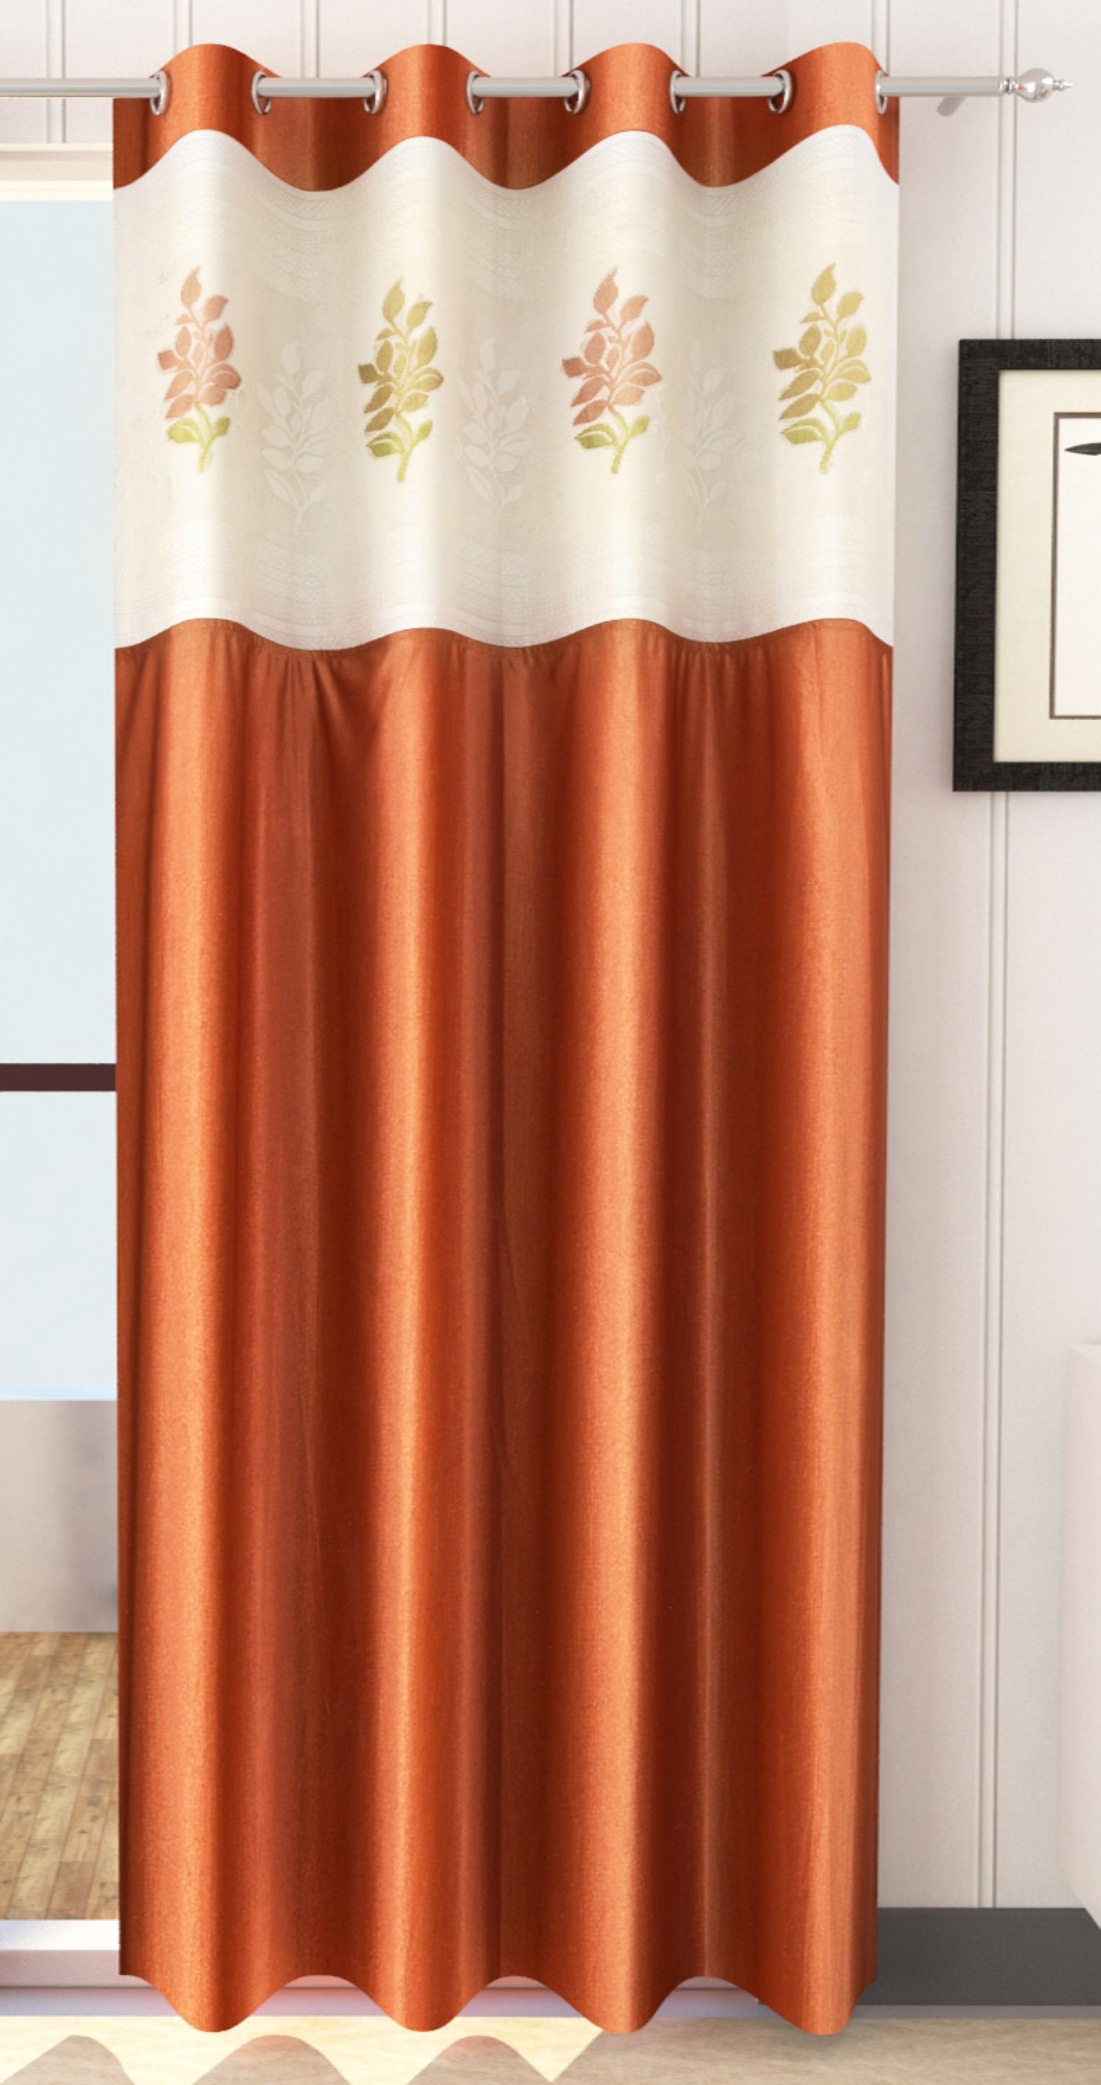 Homefab India 2 Piece Polyester  Curtain with Floral Net (Setof2HF822EuroNetRust)